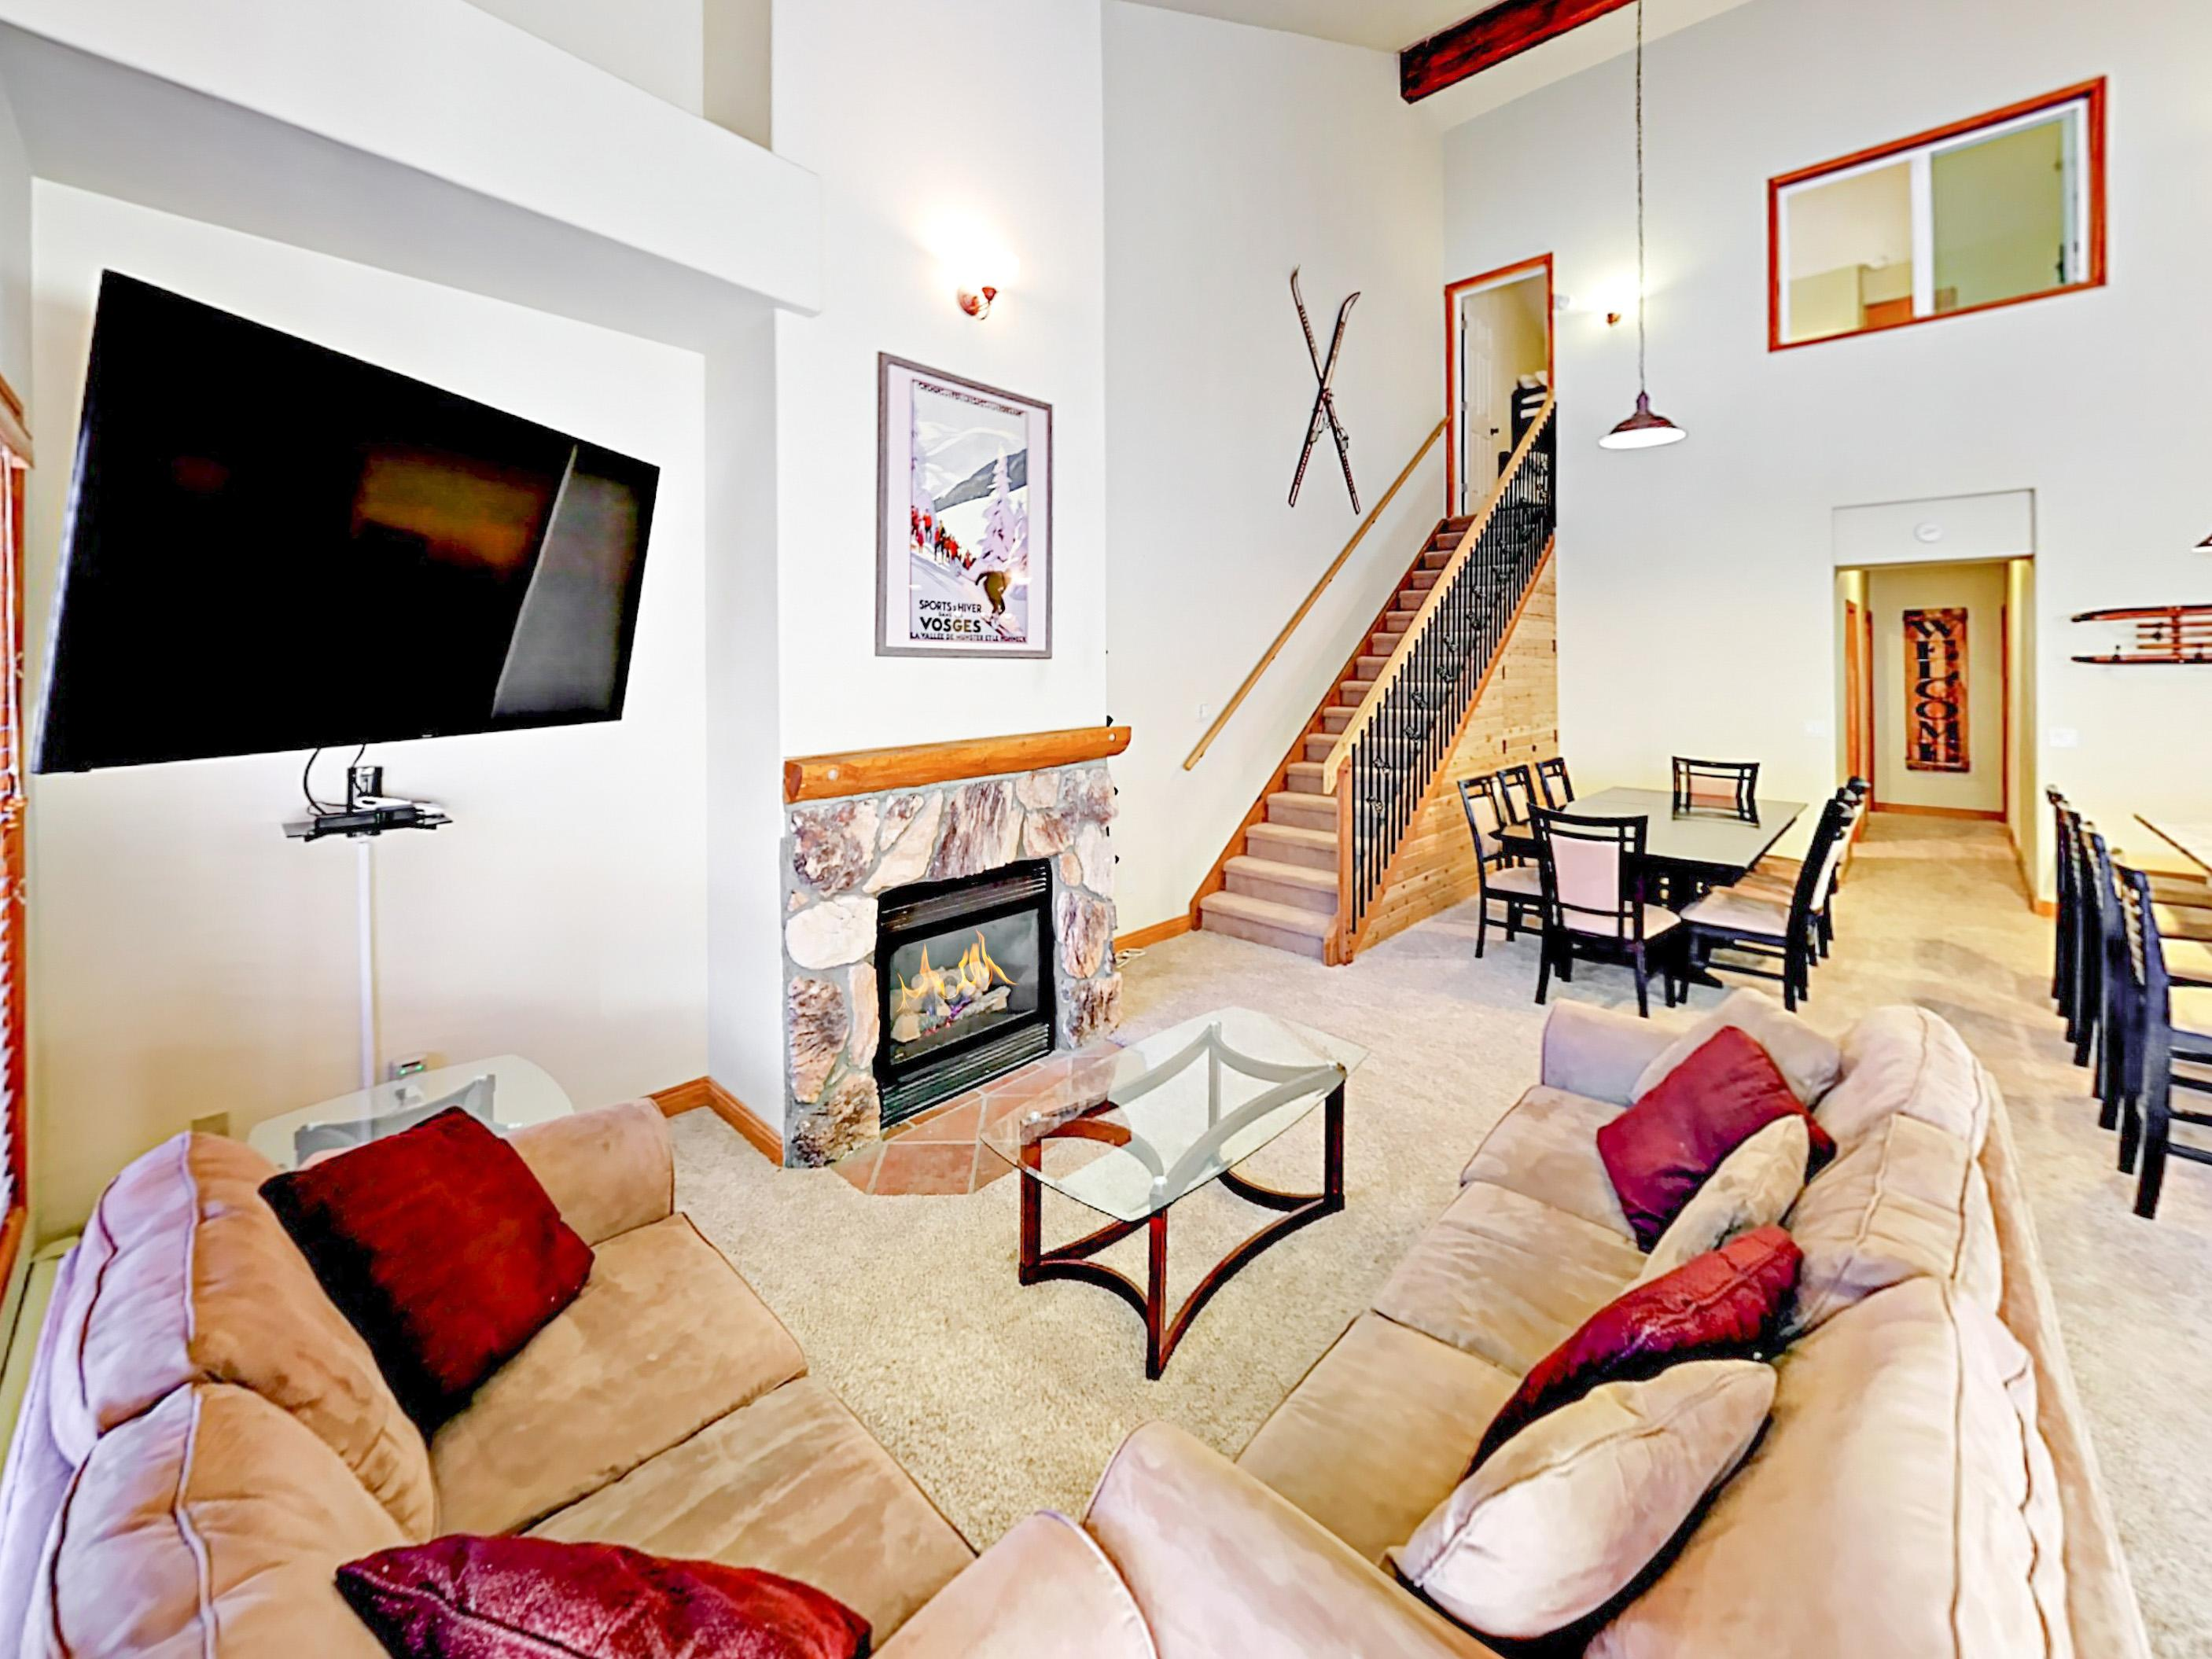 Welcome to Keystone! This spacious condo is professionally managed by TurnKey Vacation Rentals.